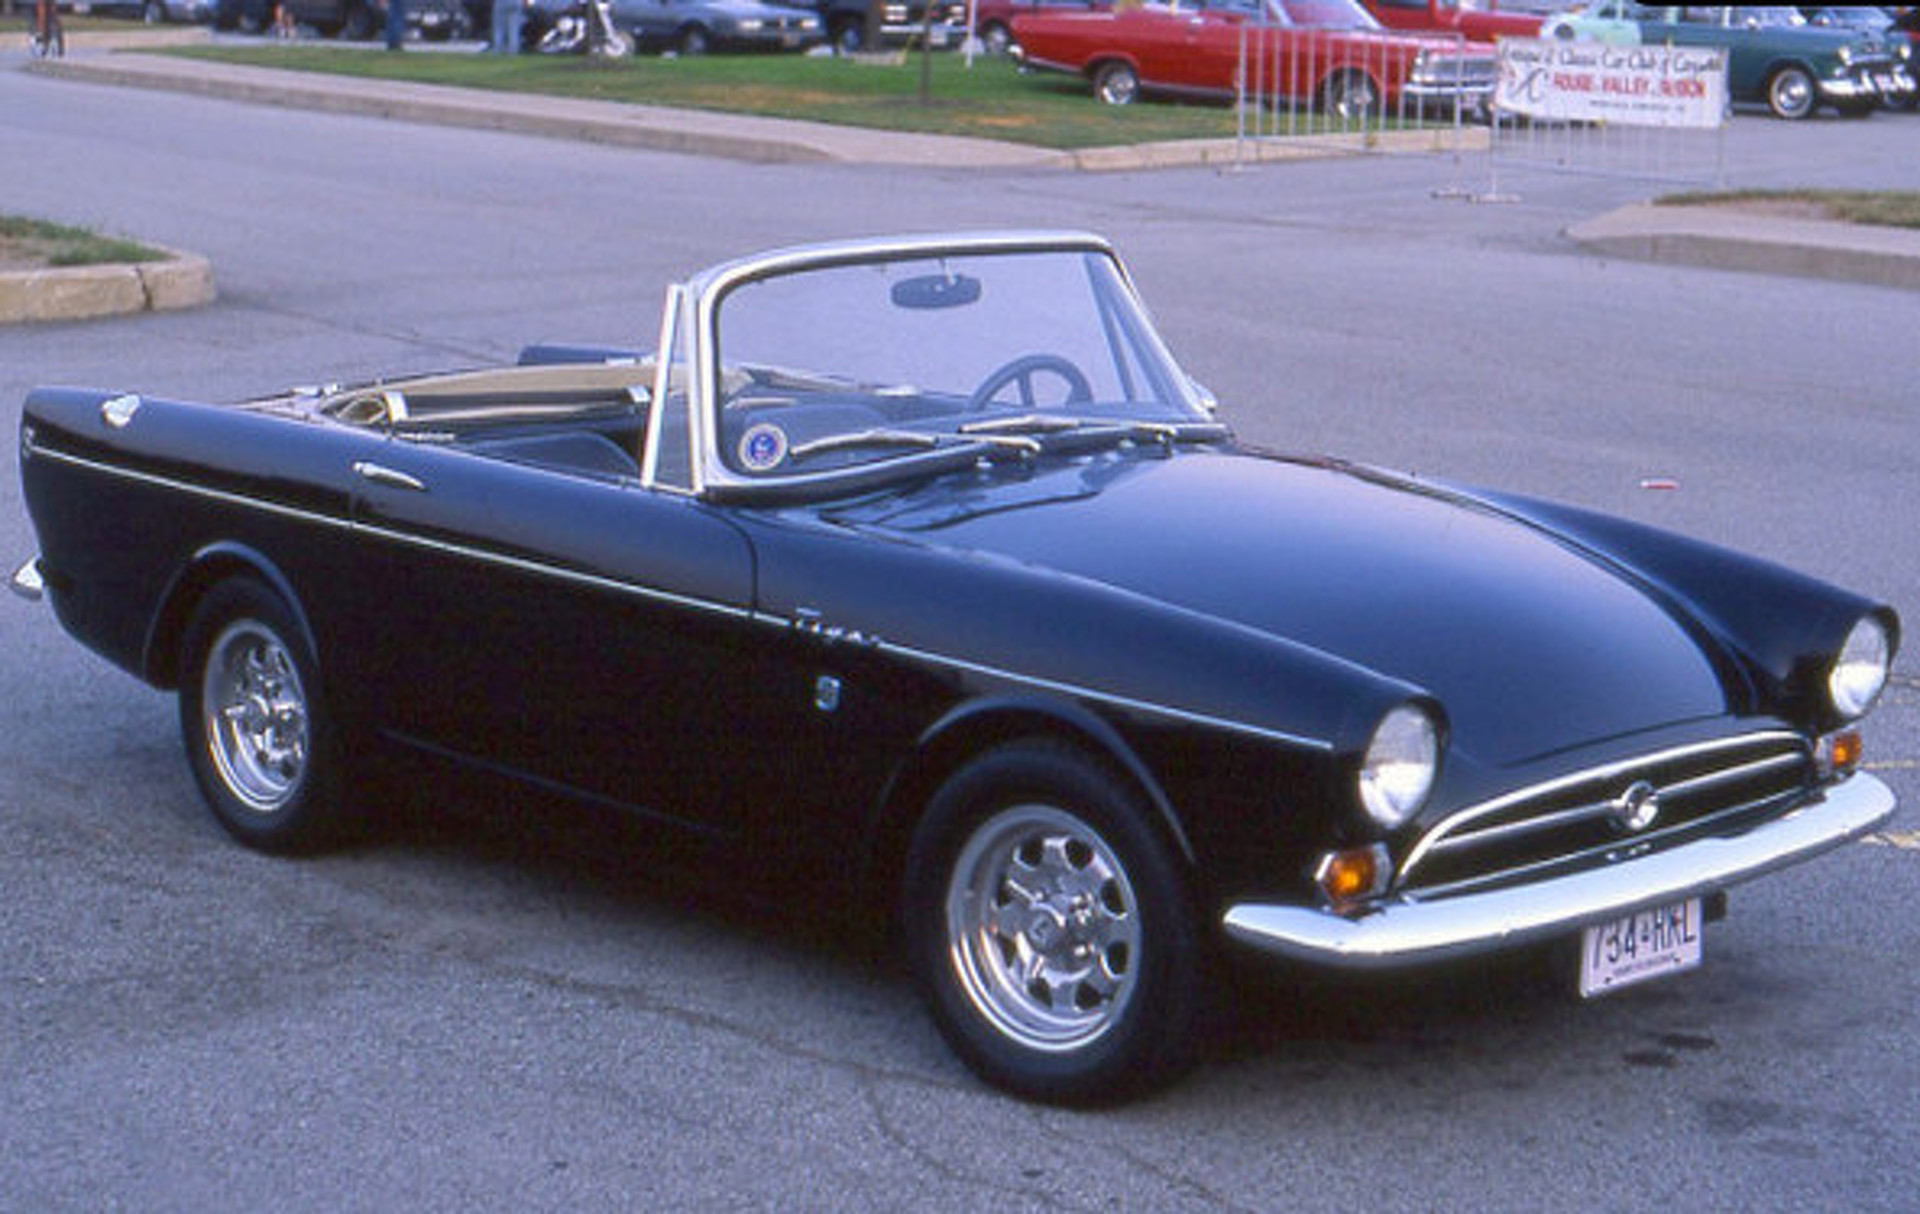 The Sunbeam Tiger: Carroll's Other Shelby